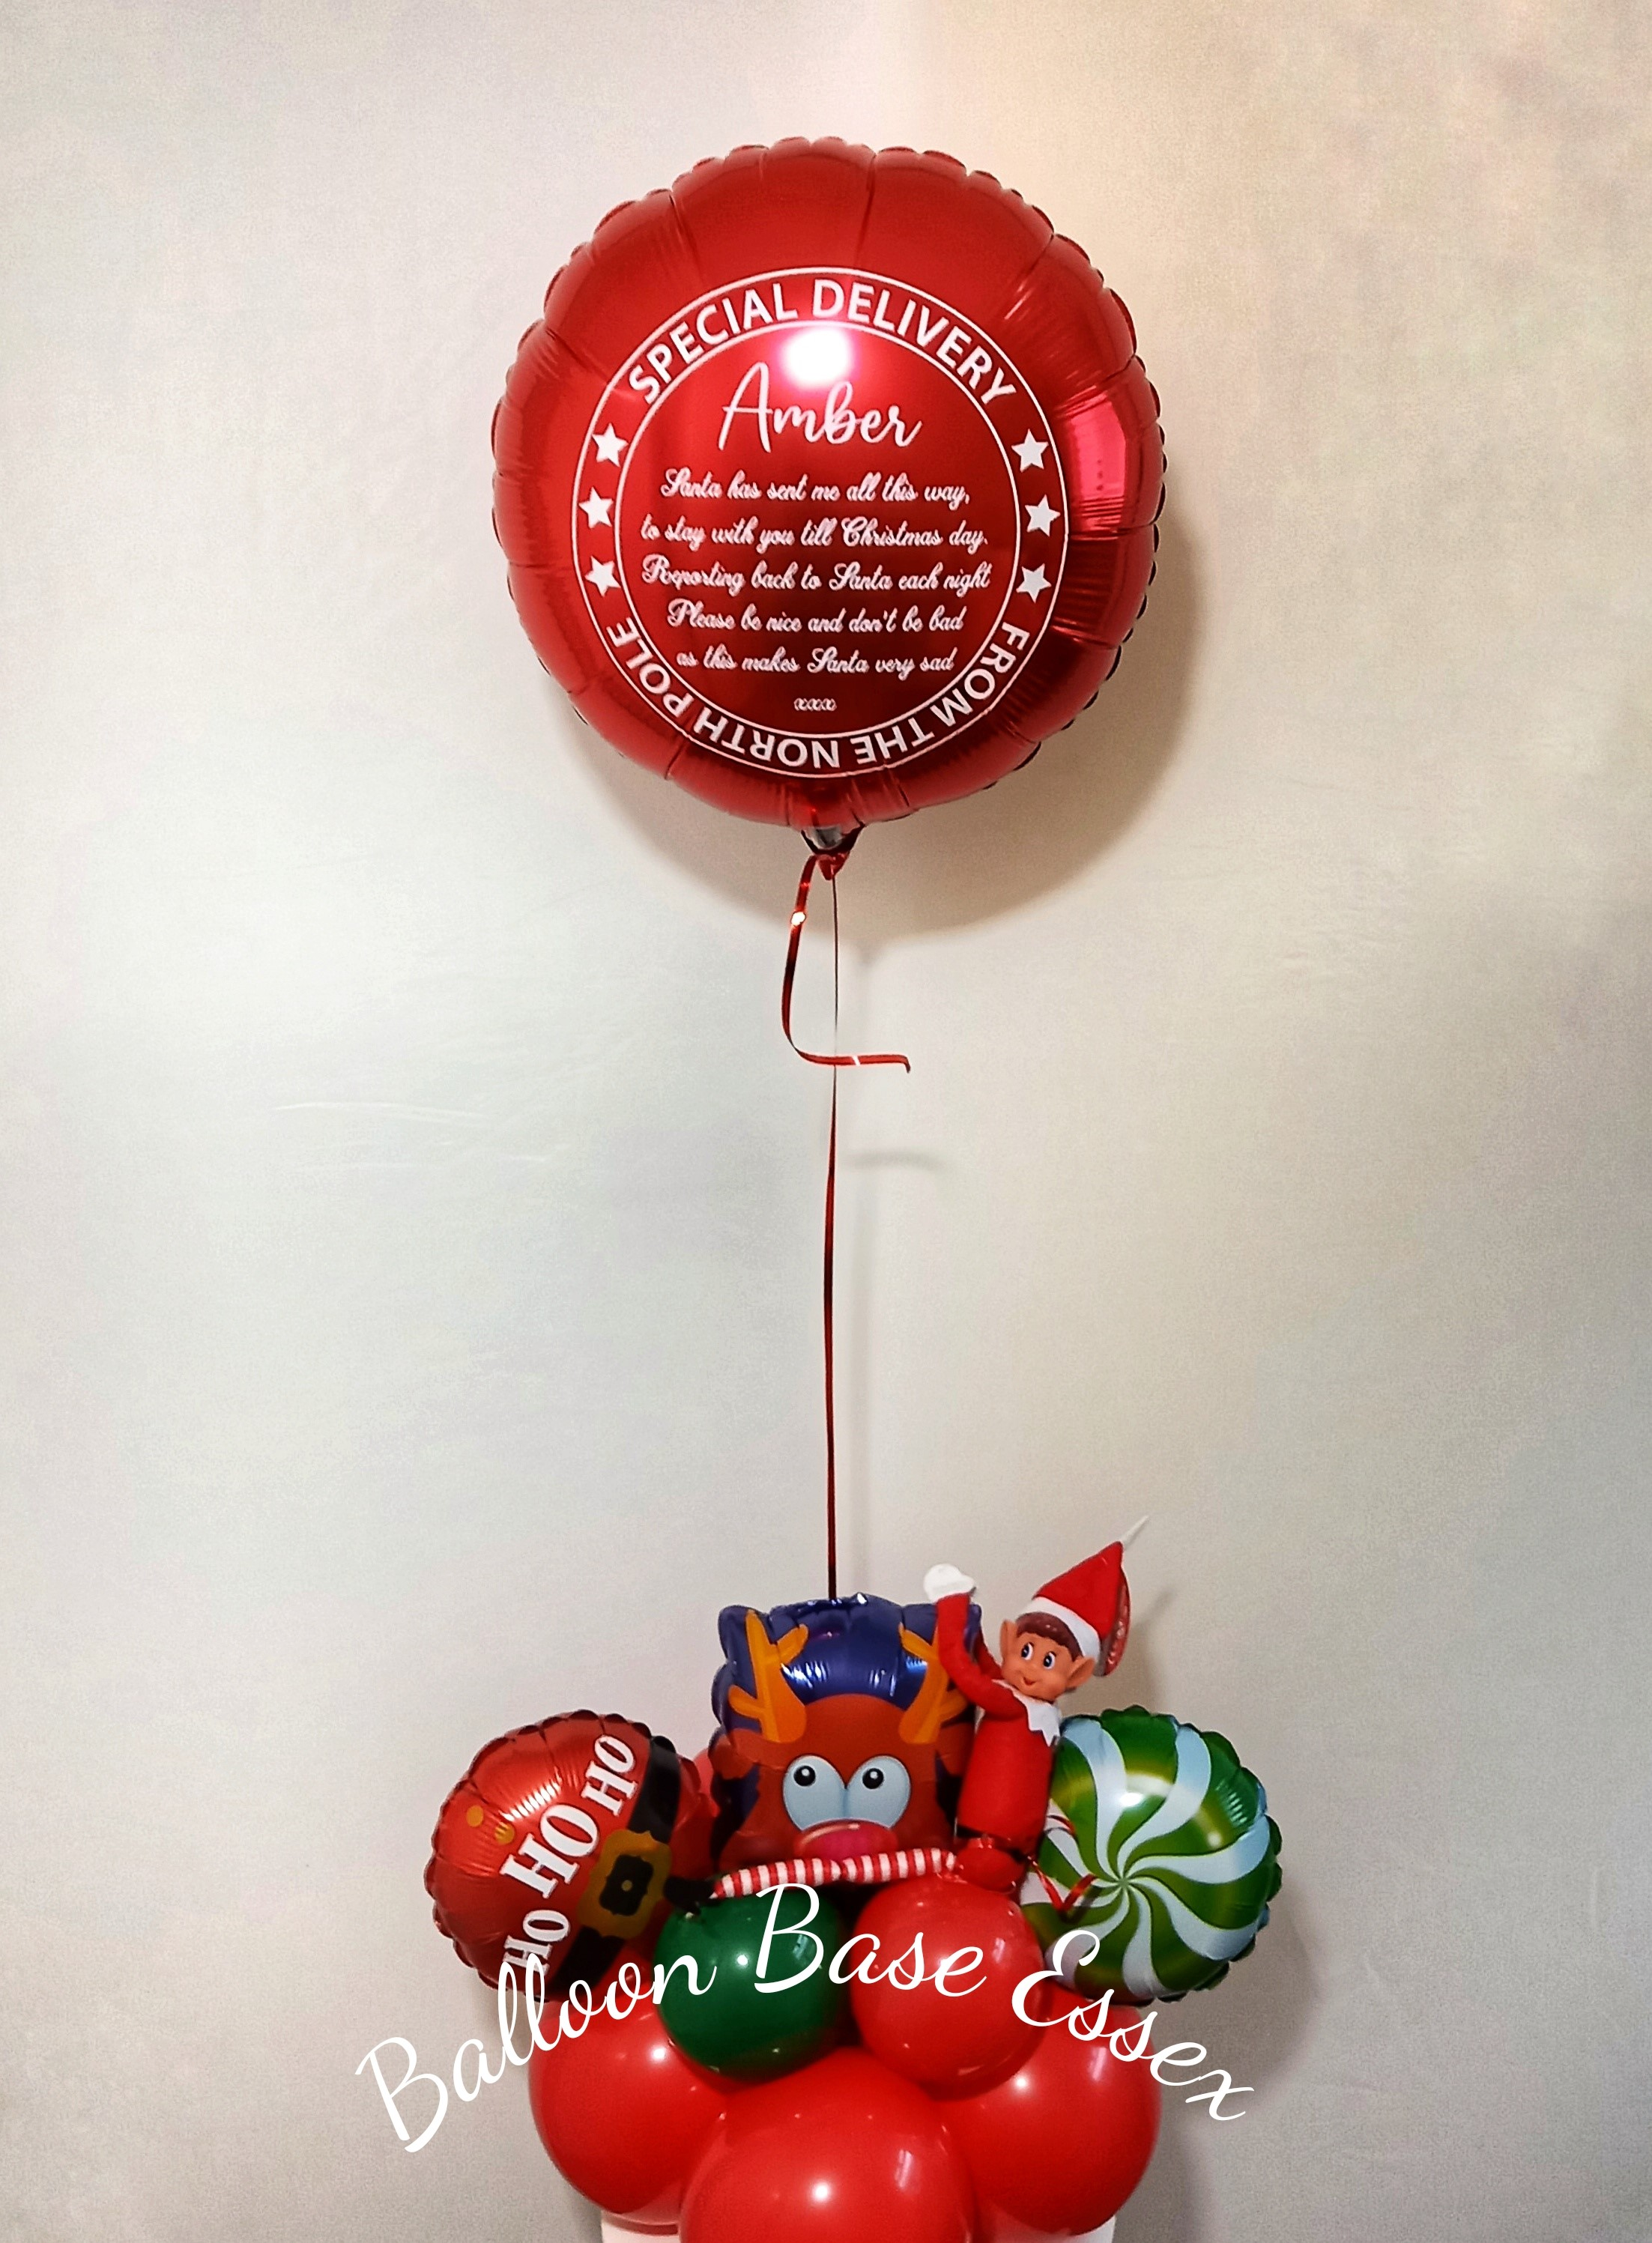 Red balloon with elf toy